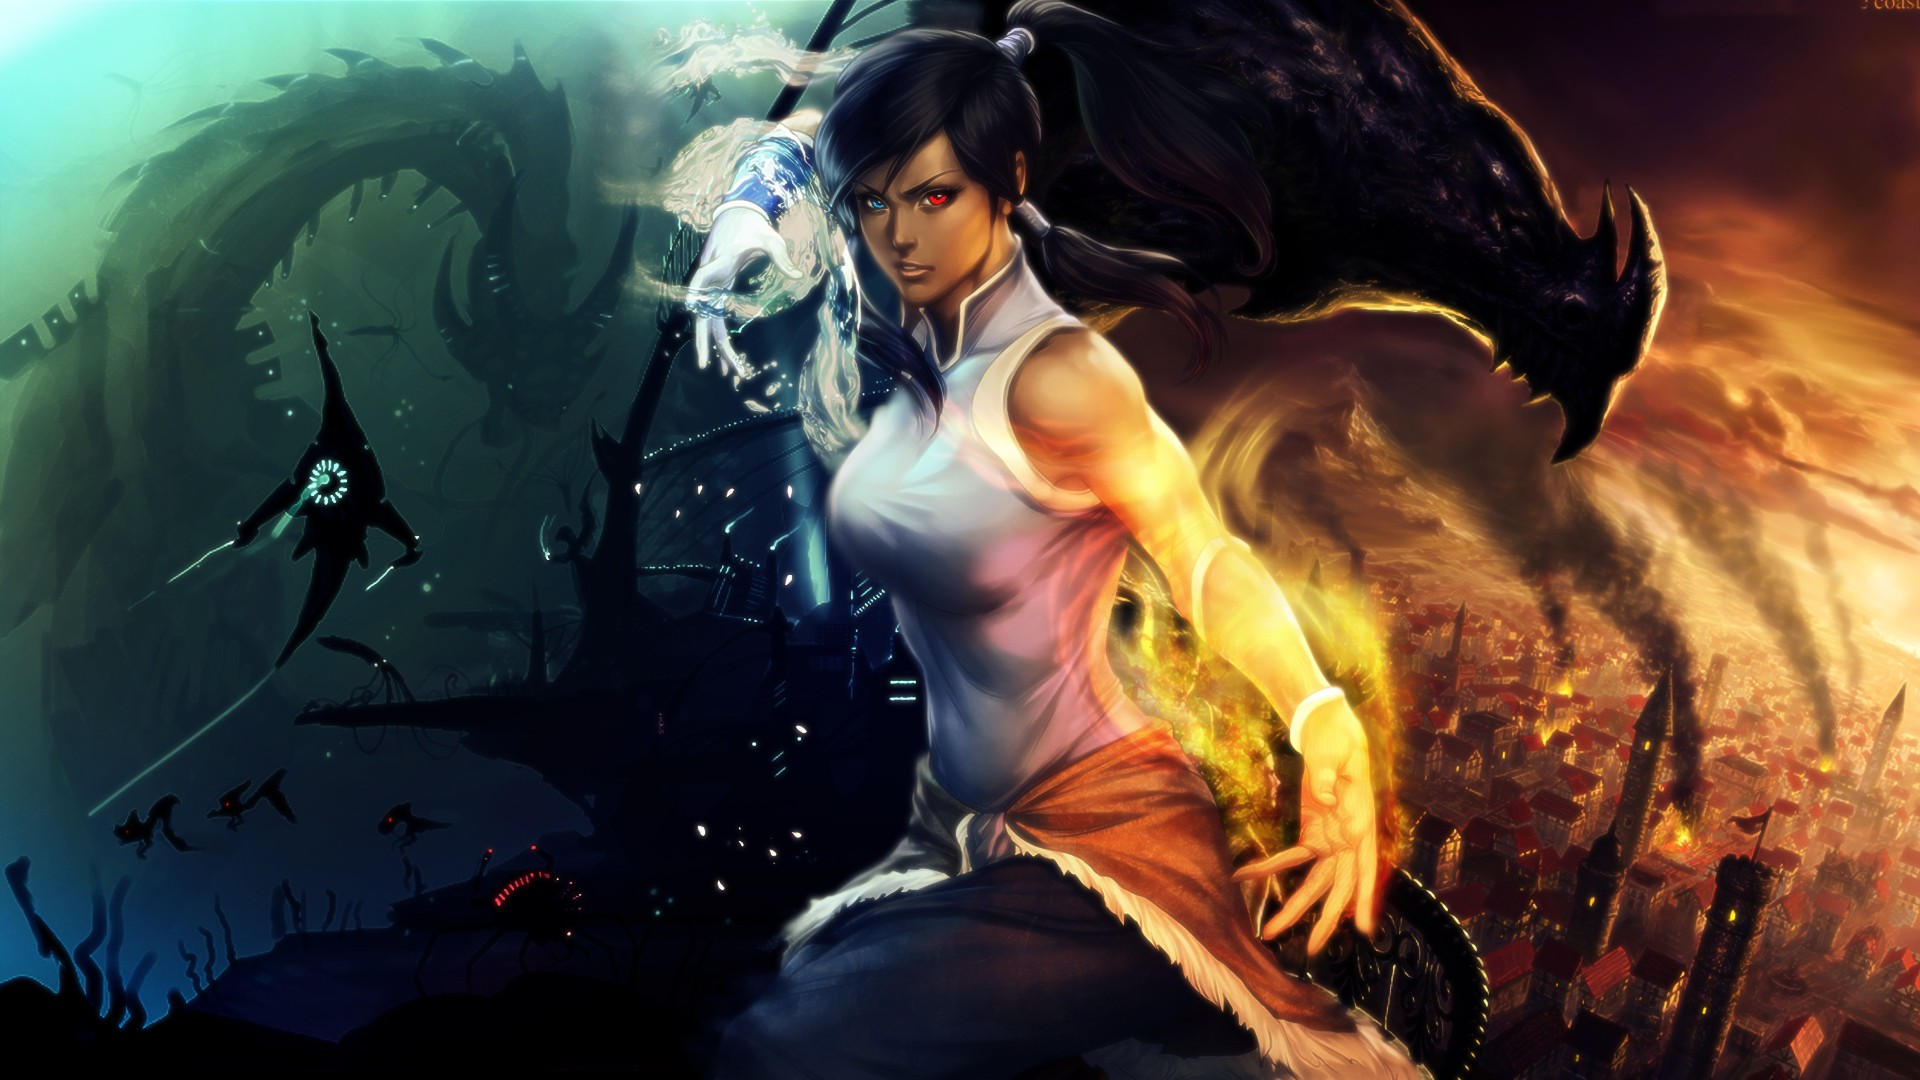 Avatar-The-Legend-Of-Korra-HD-Wallpaper.jpg